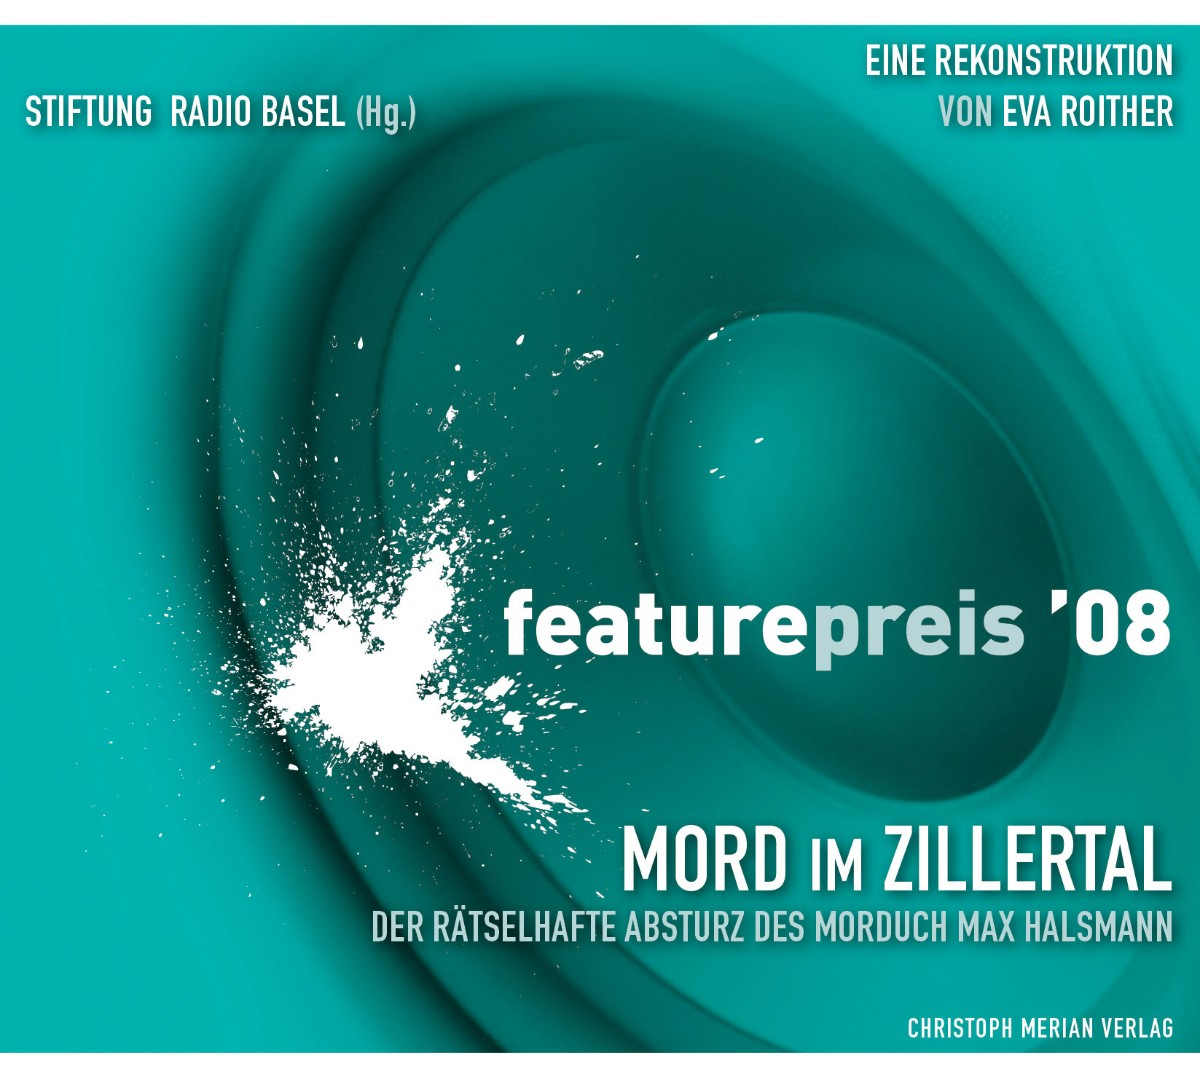 Featurepreis 2008 - Mord im Zillertal